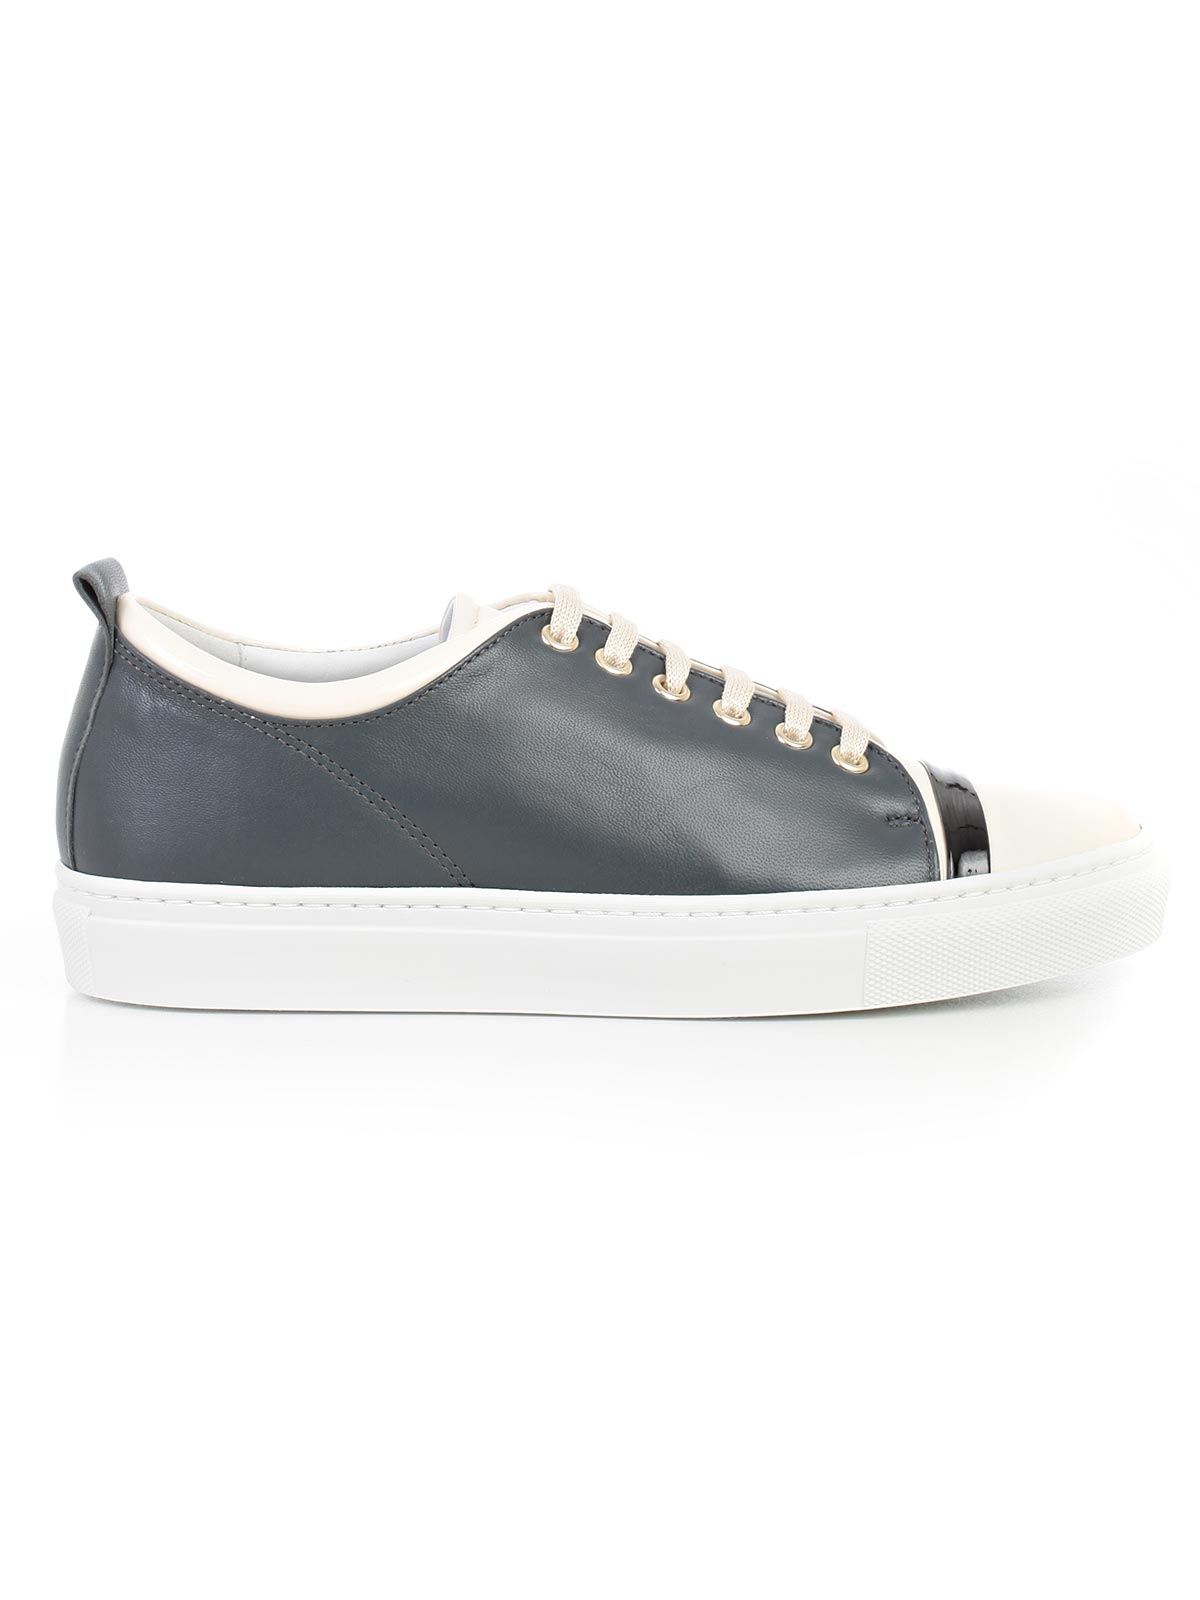 Picture of LANVIN Footwear